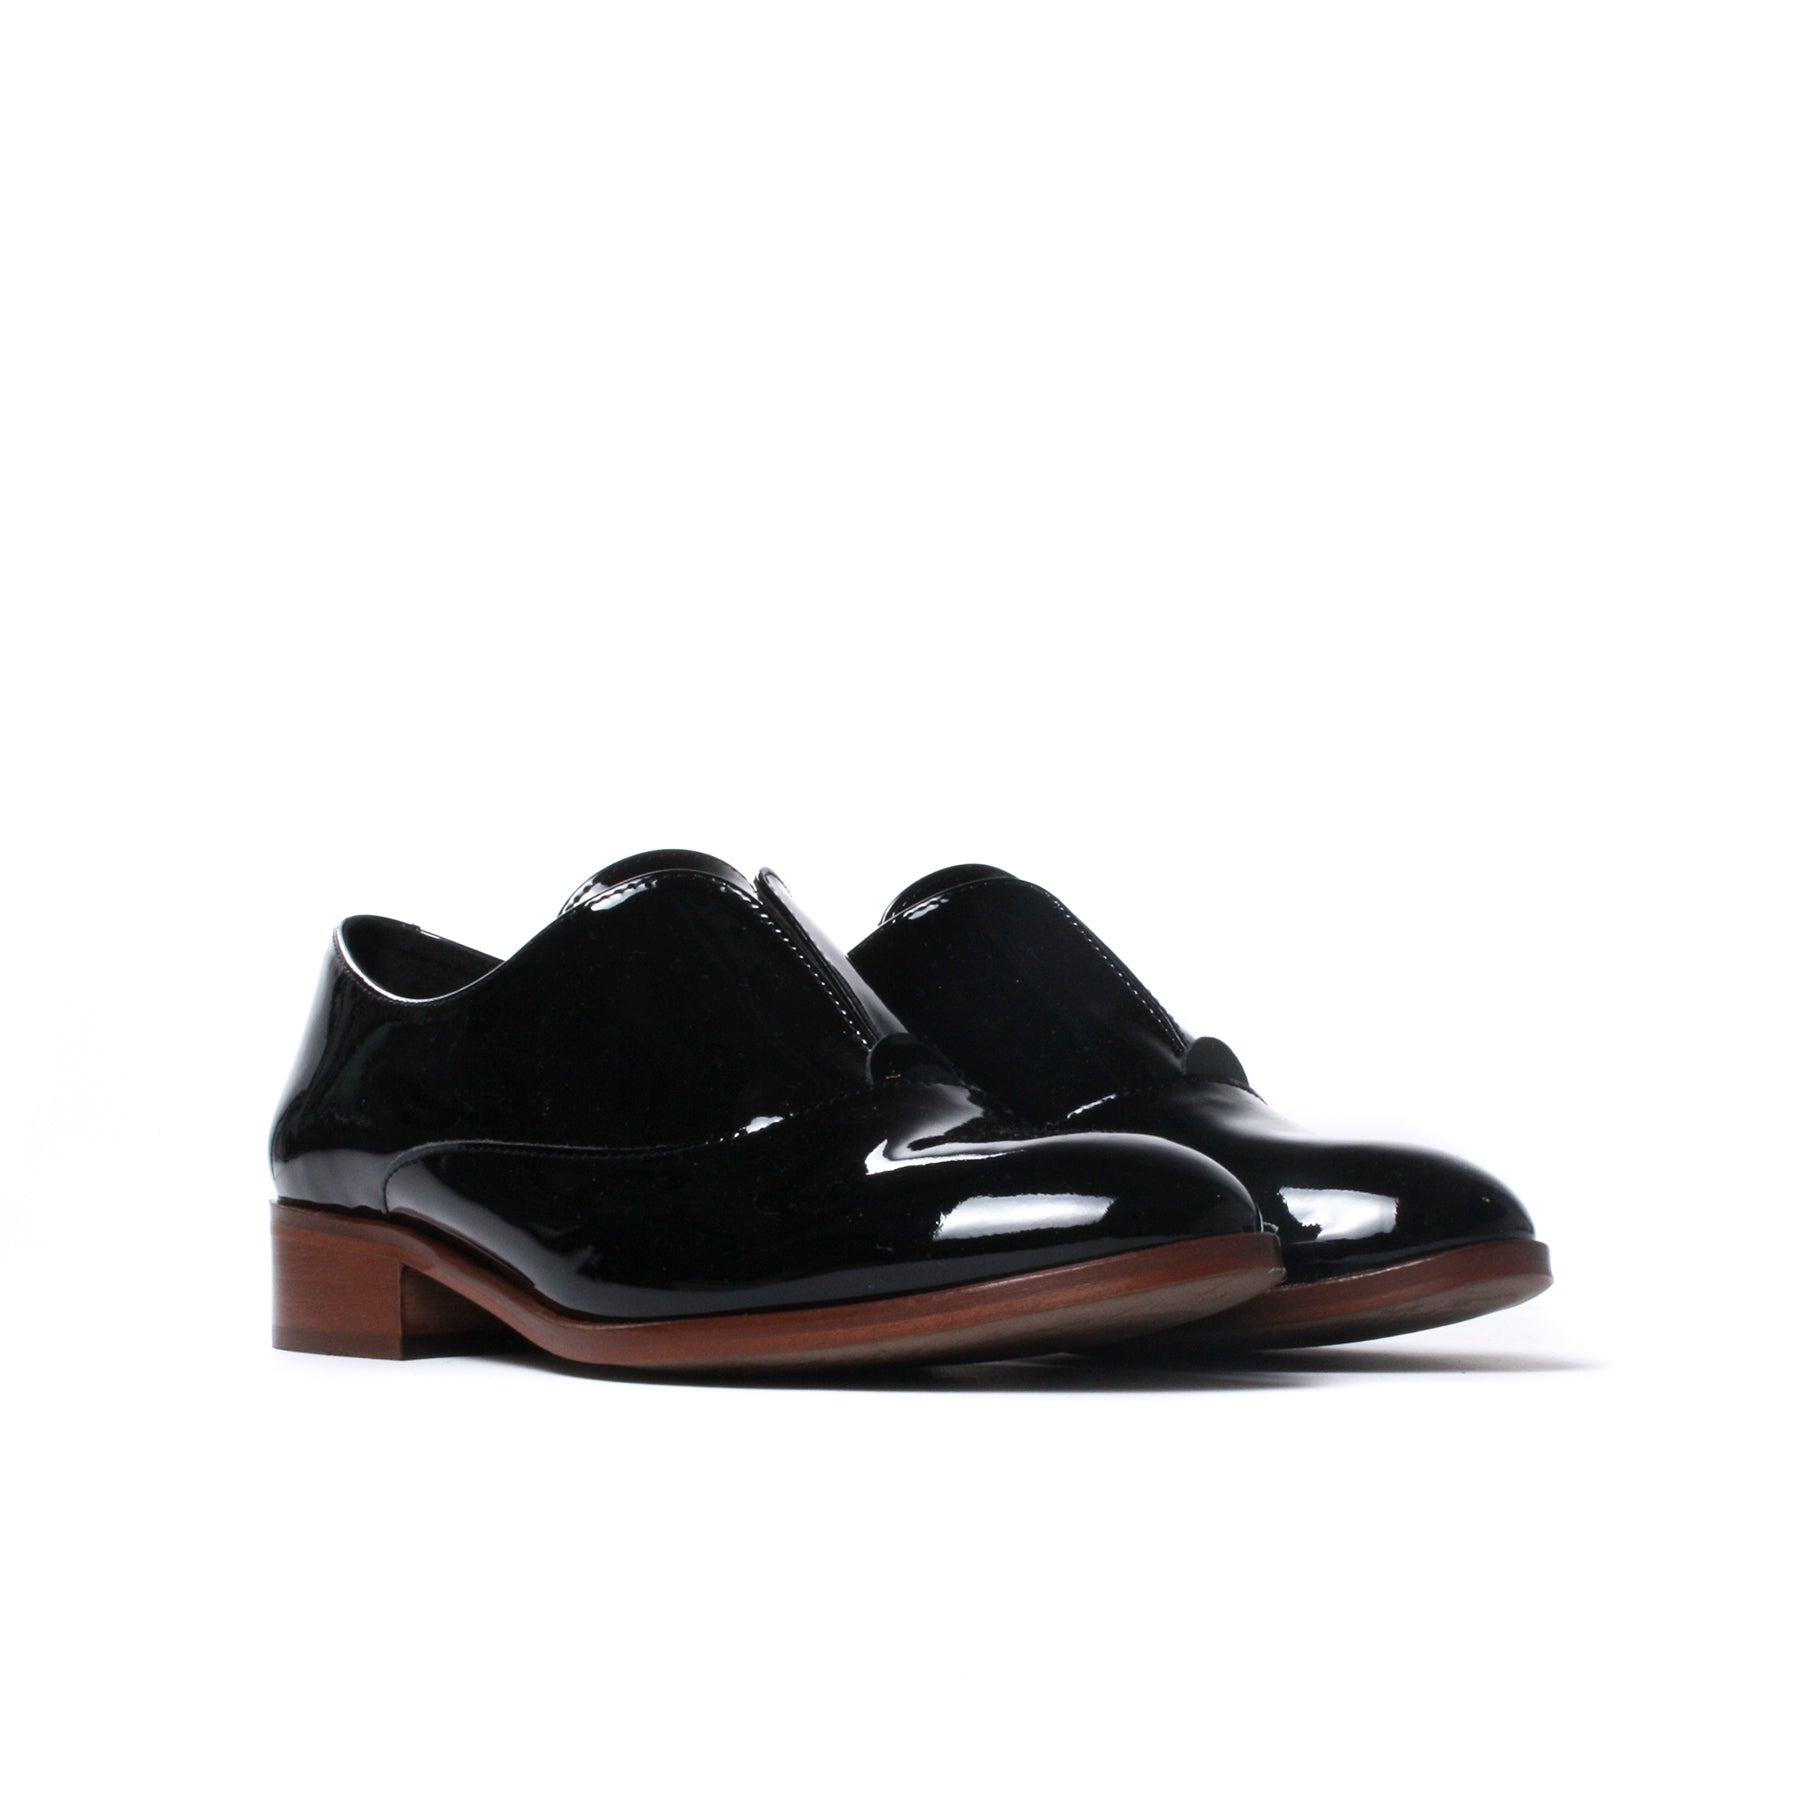 Surrey Black Patent Leather